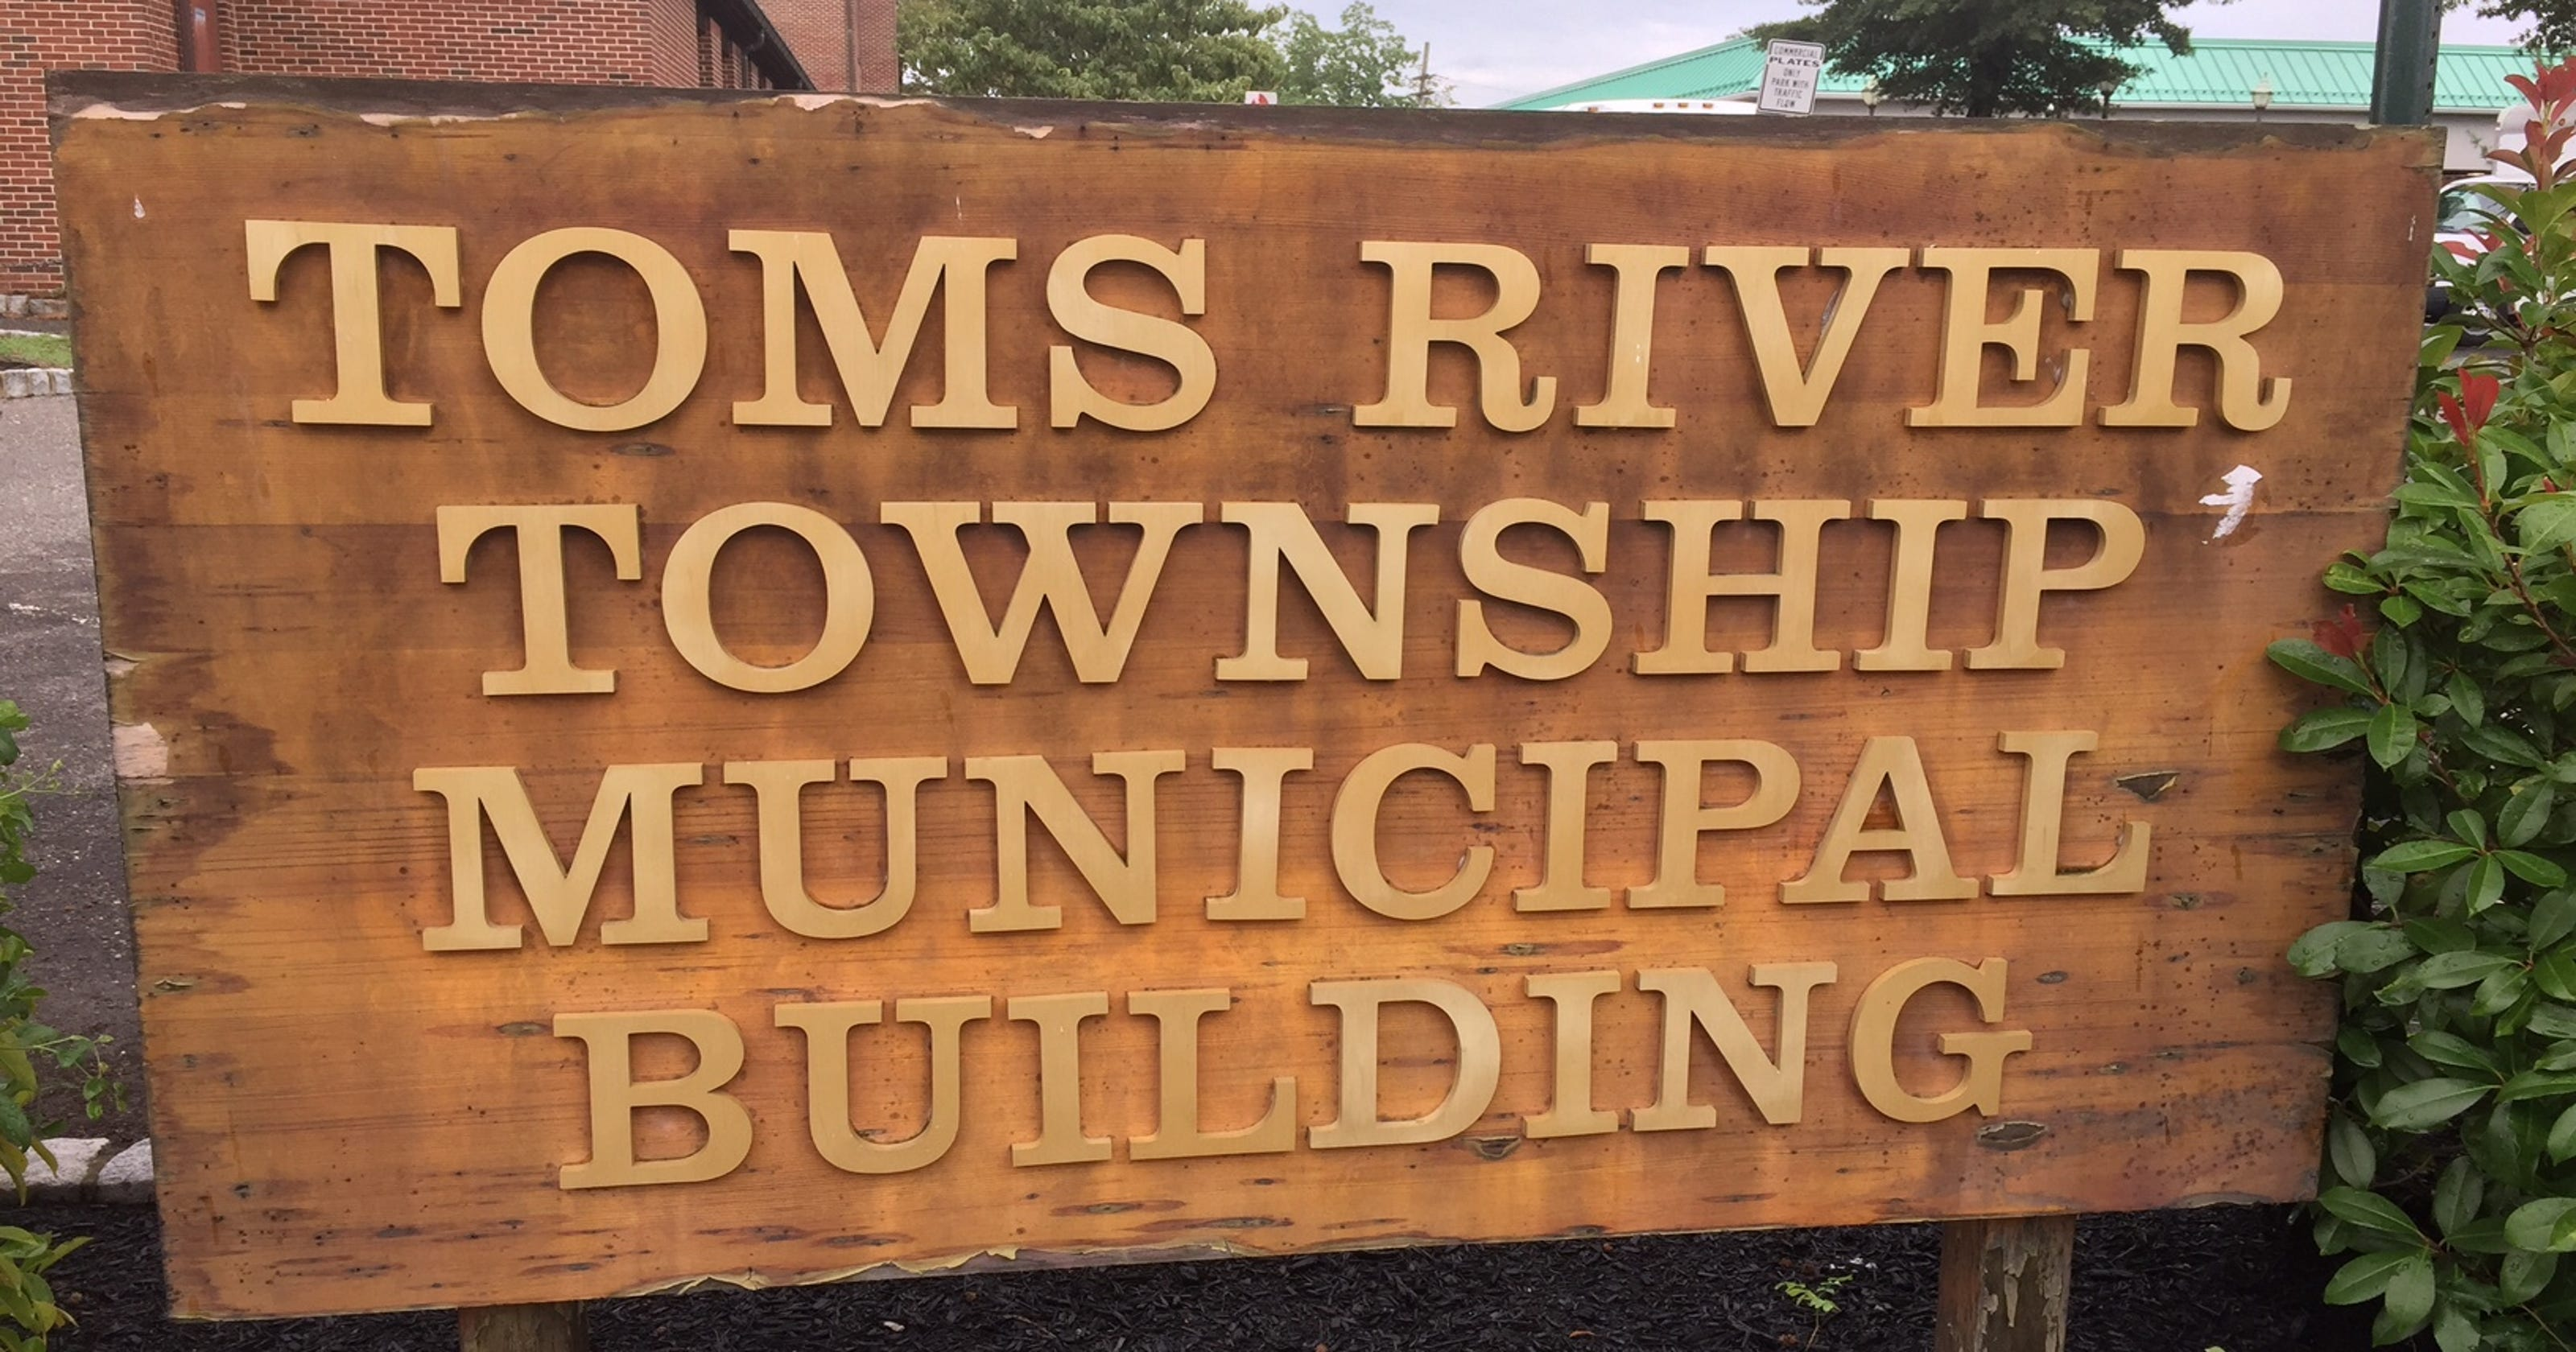 Learn the mystery history of Toms River neighborhoods